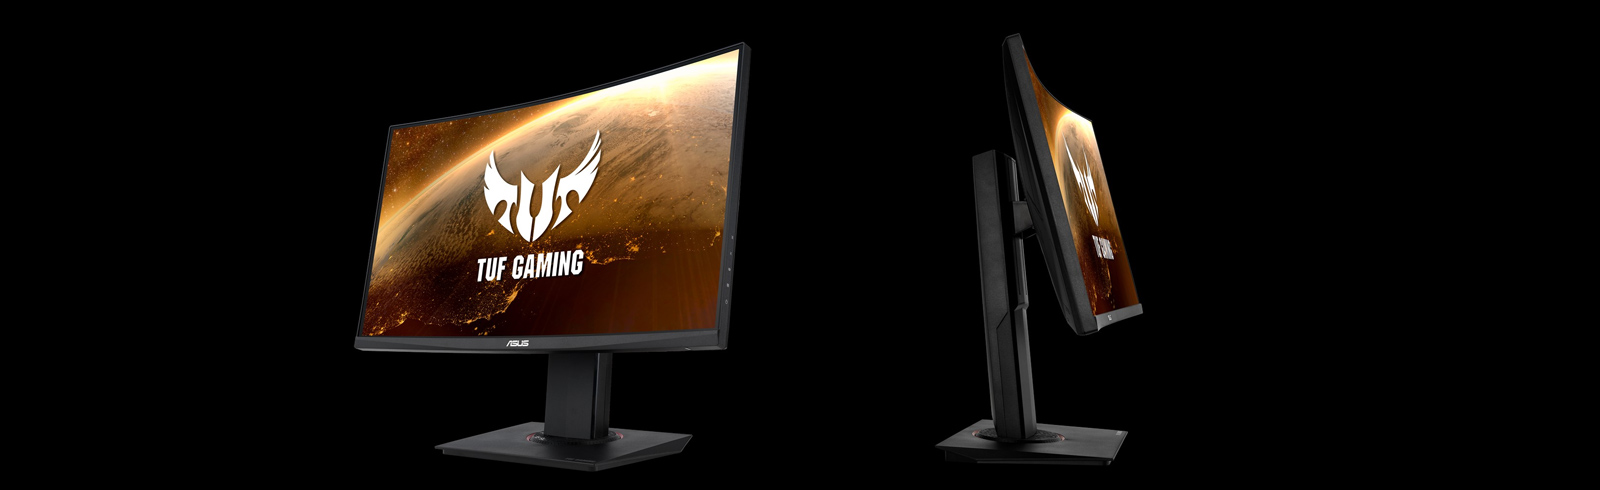 Asus launches a new TUF Gaming monitor with a 144Hz curved VA panel - the Asus VG24VQ